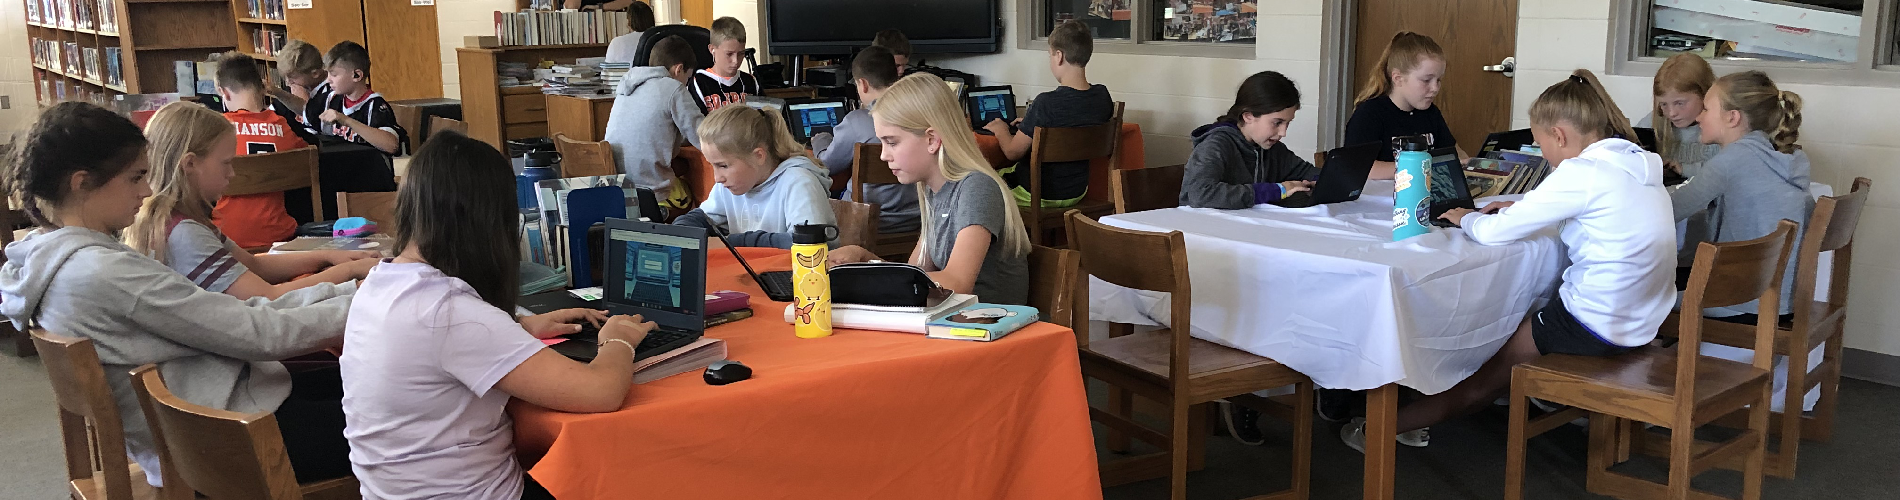 6th-grade students practice their keyboarding skills in the library.